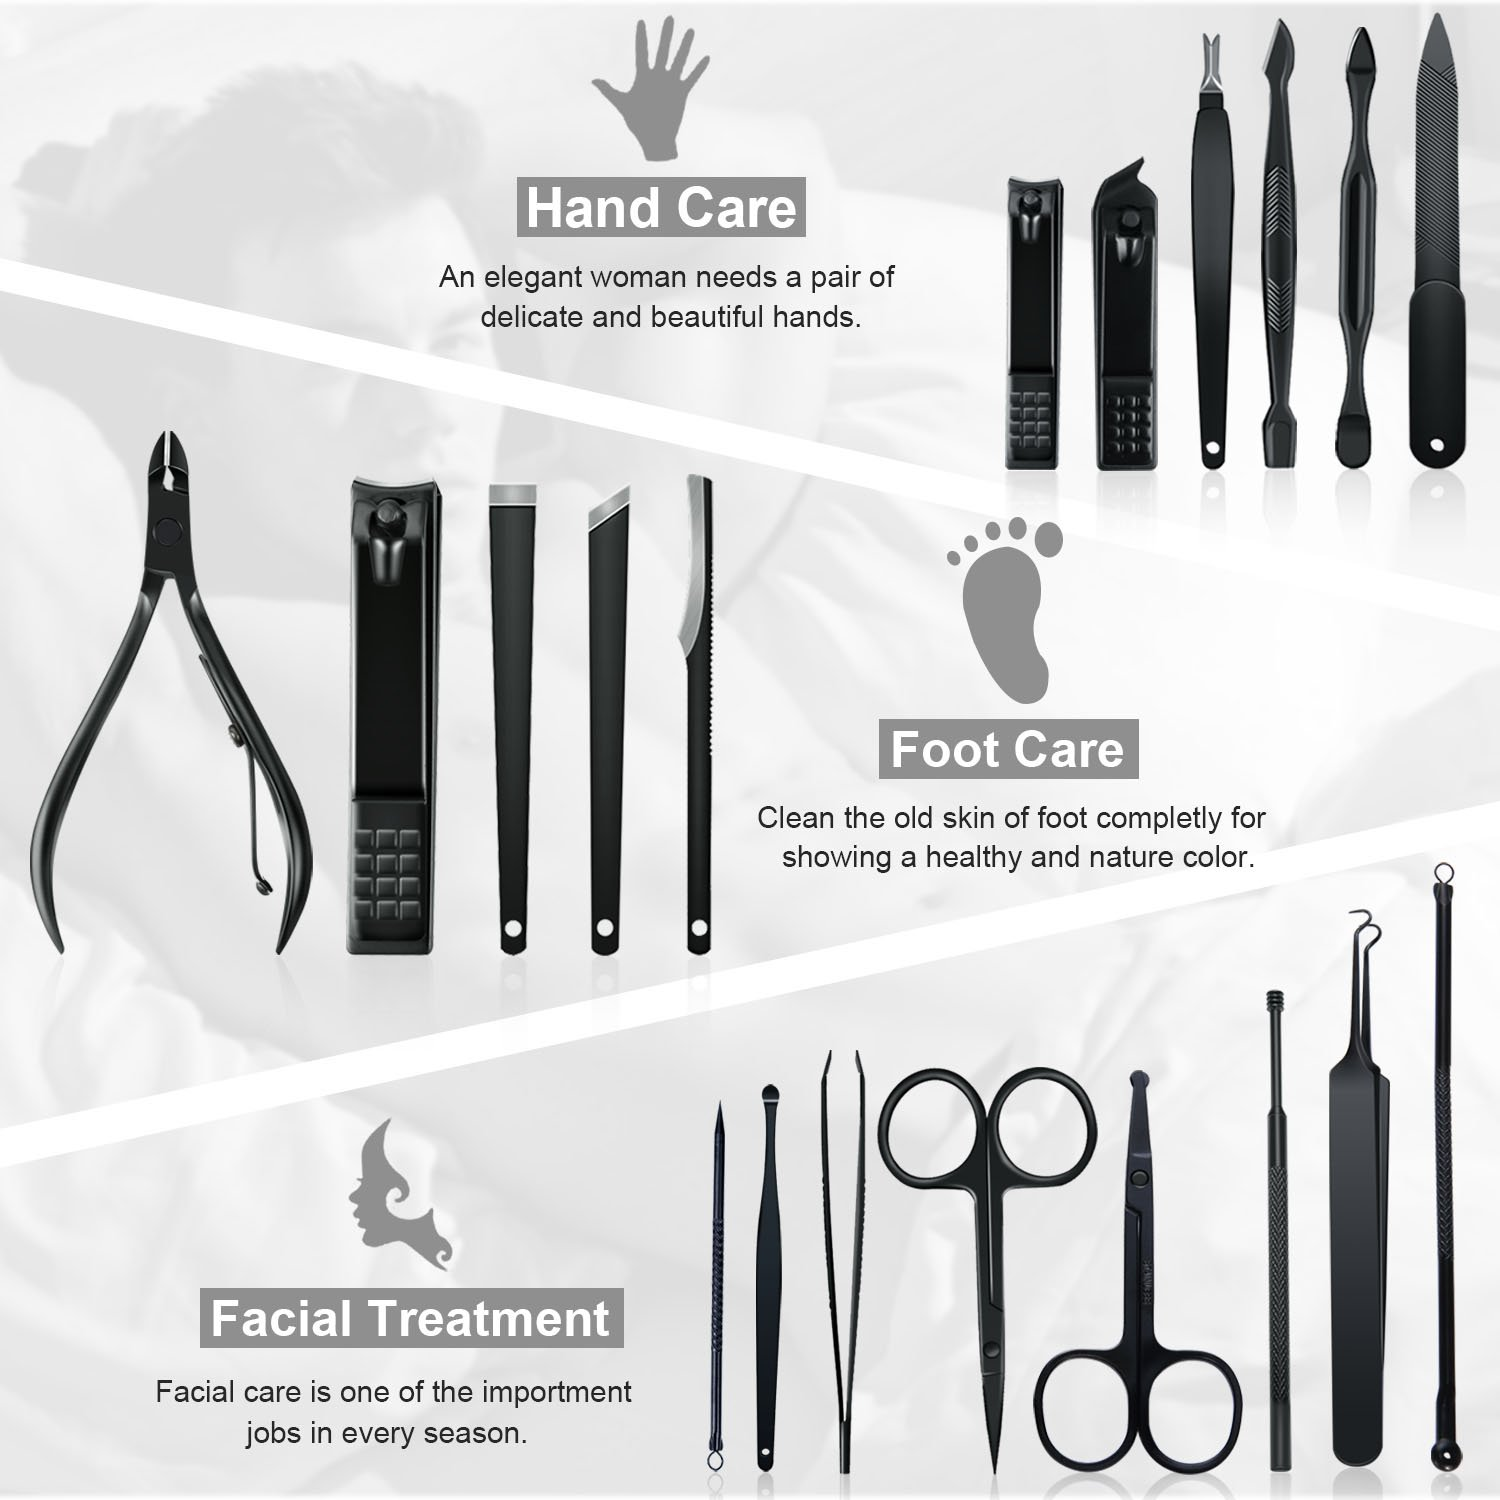 Manicure Set Professional Nail Clippers Kit Pedicure Care Tools-Stainless Steel Men Grooming Kit 20Pcs With Black PU Leather Case for Travel or Home (Black/Blue) by Keiby Citom (Image #4)